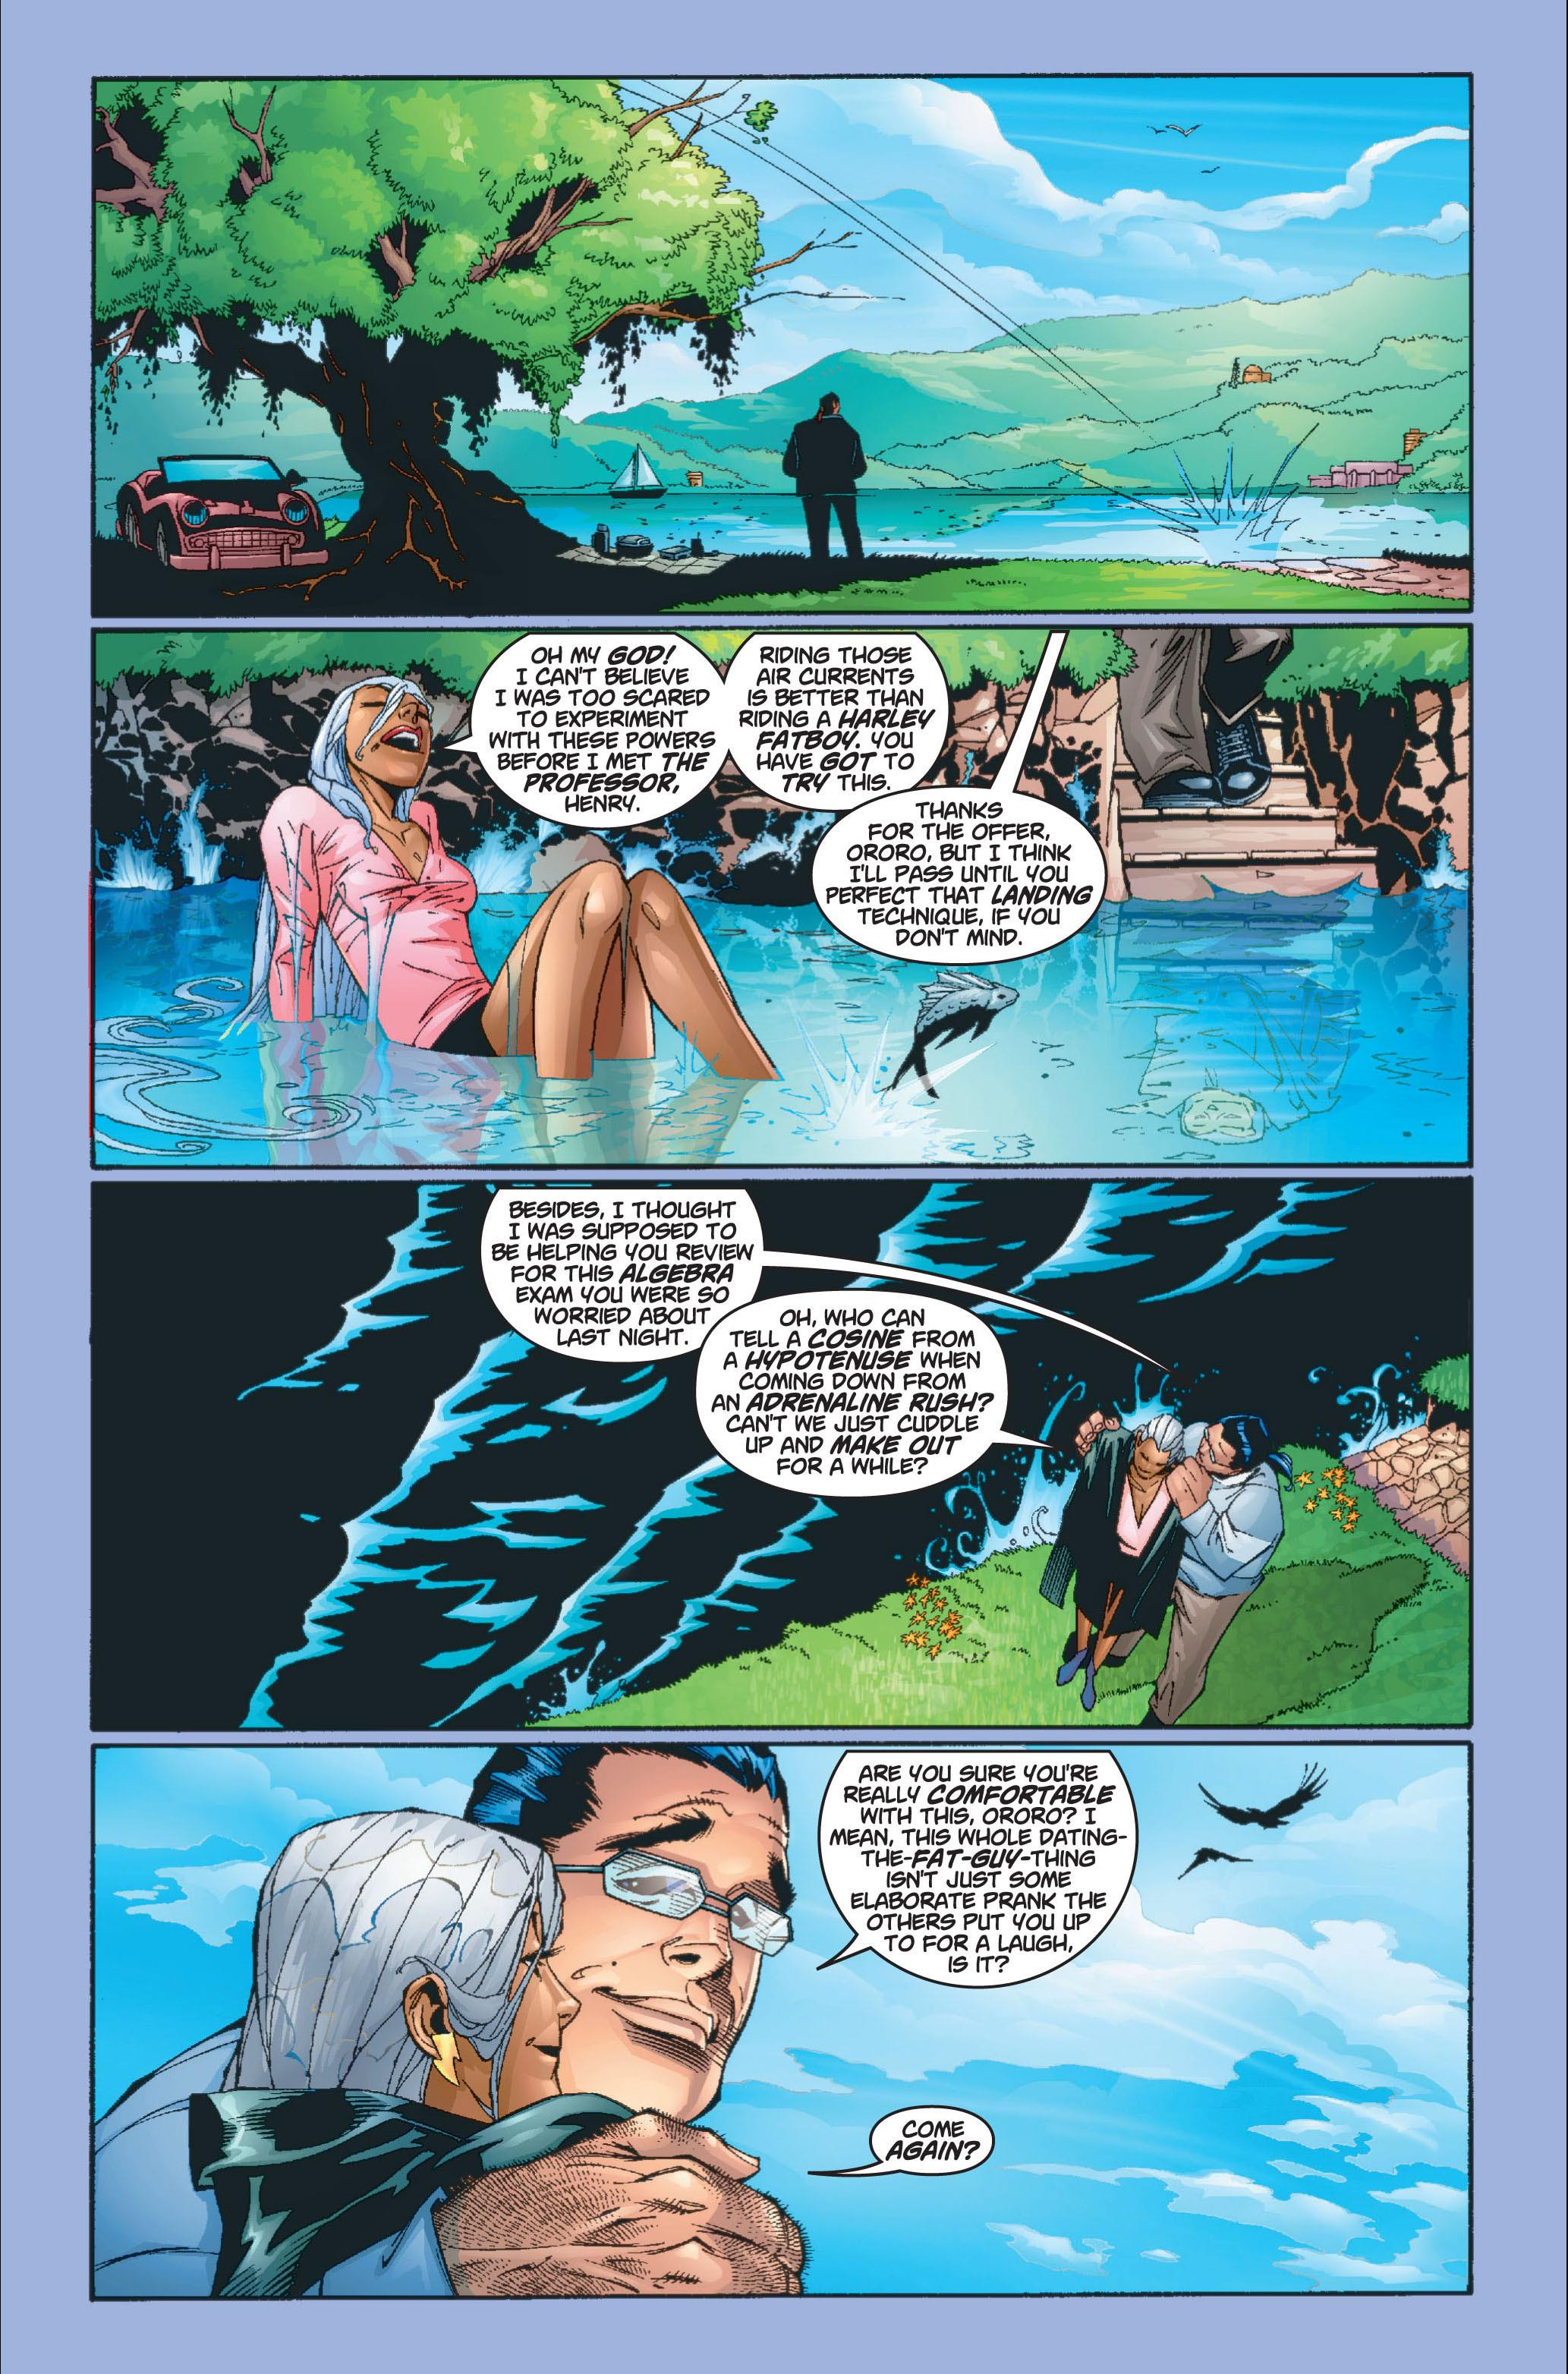 Ultimate X-Men Return to Weapon X review